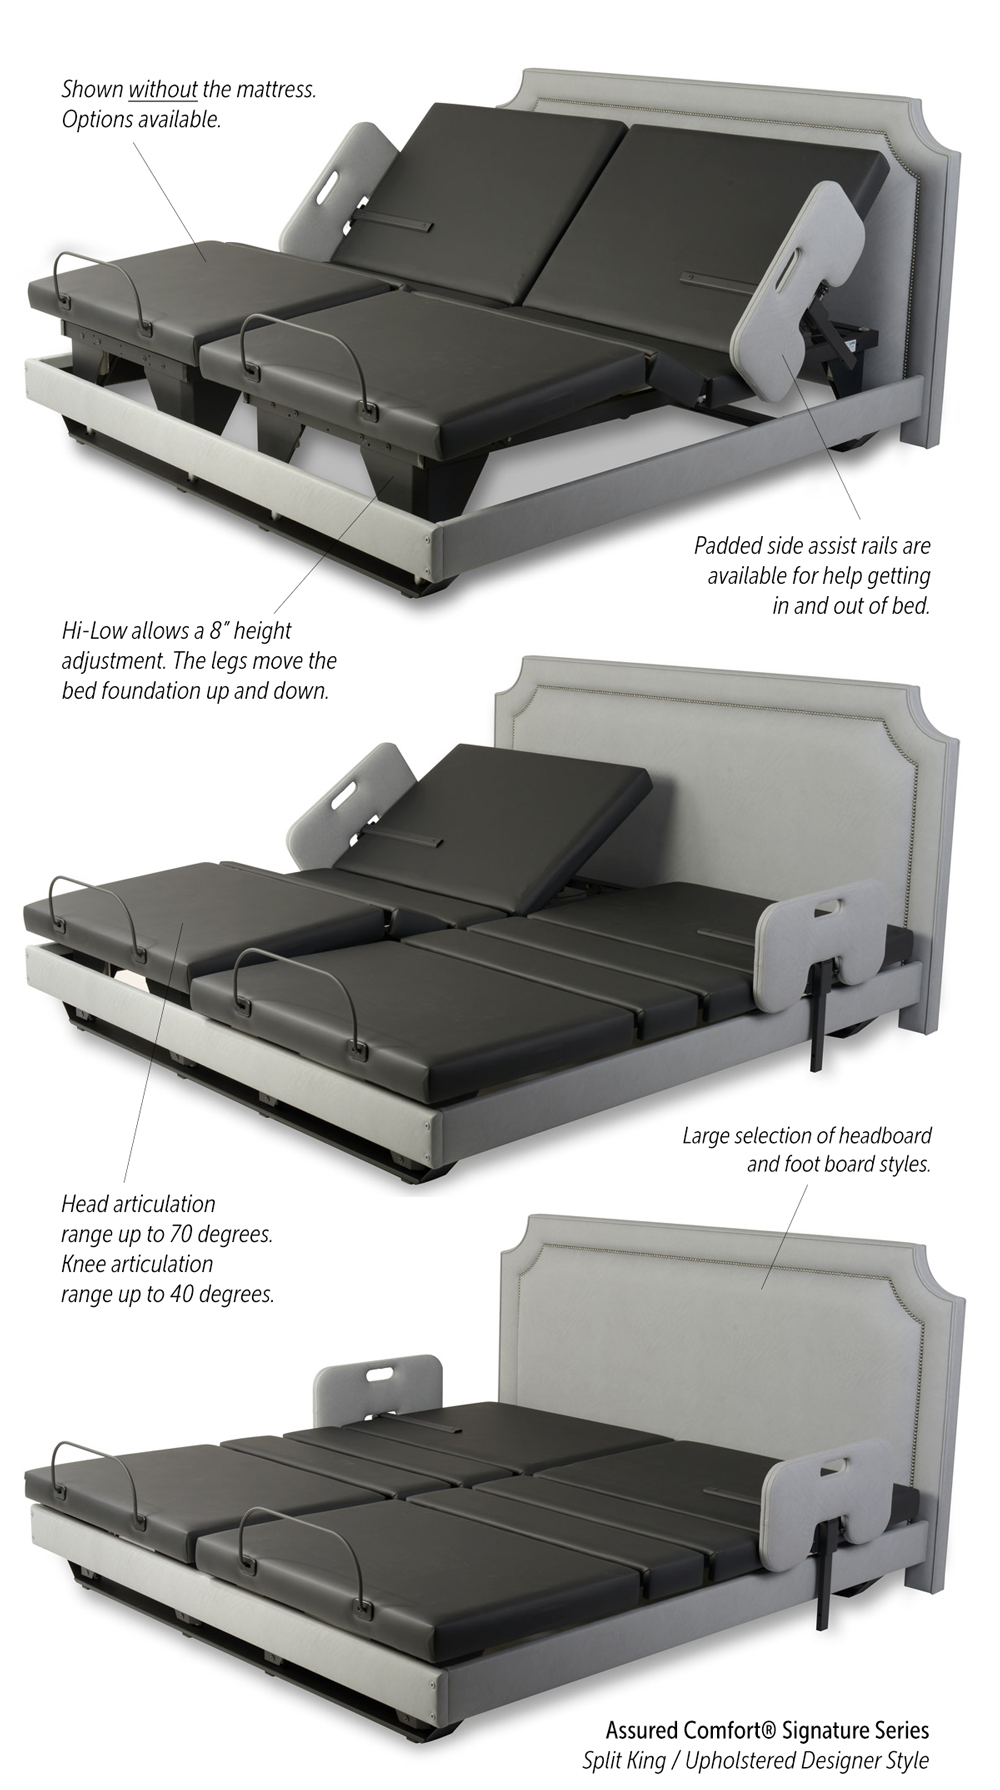 Assured Comfort Hi-Low Adjustable Beds - Signature Series - Split King